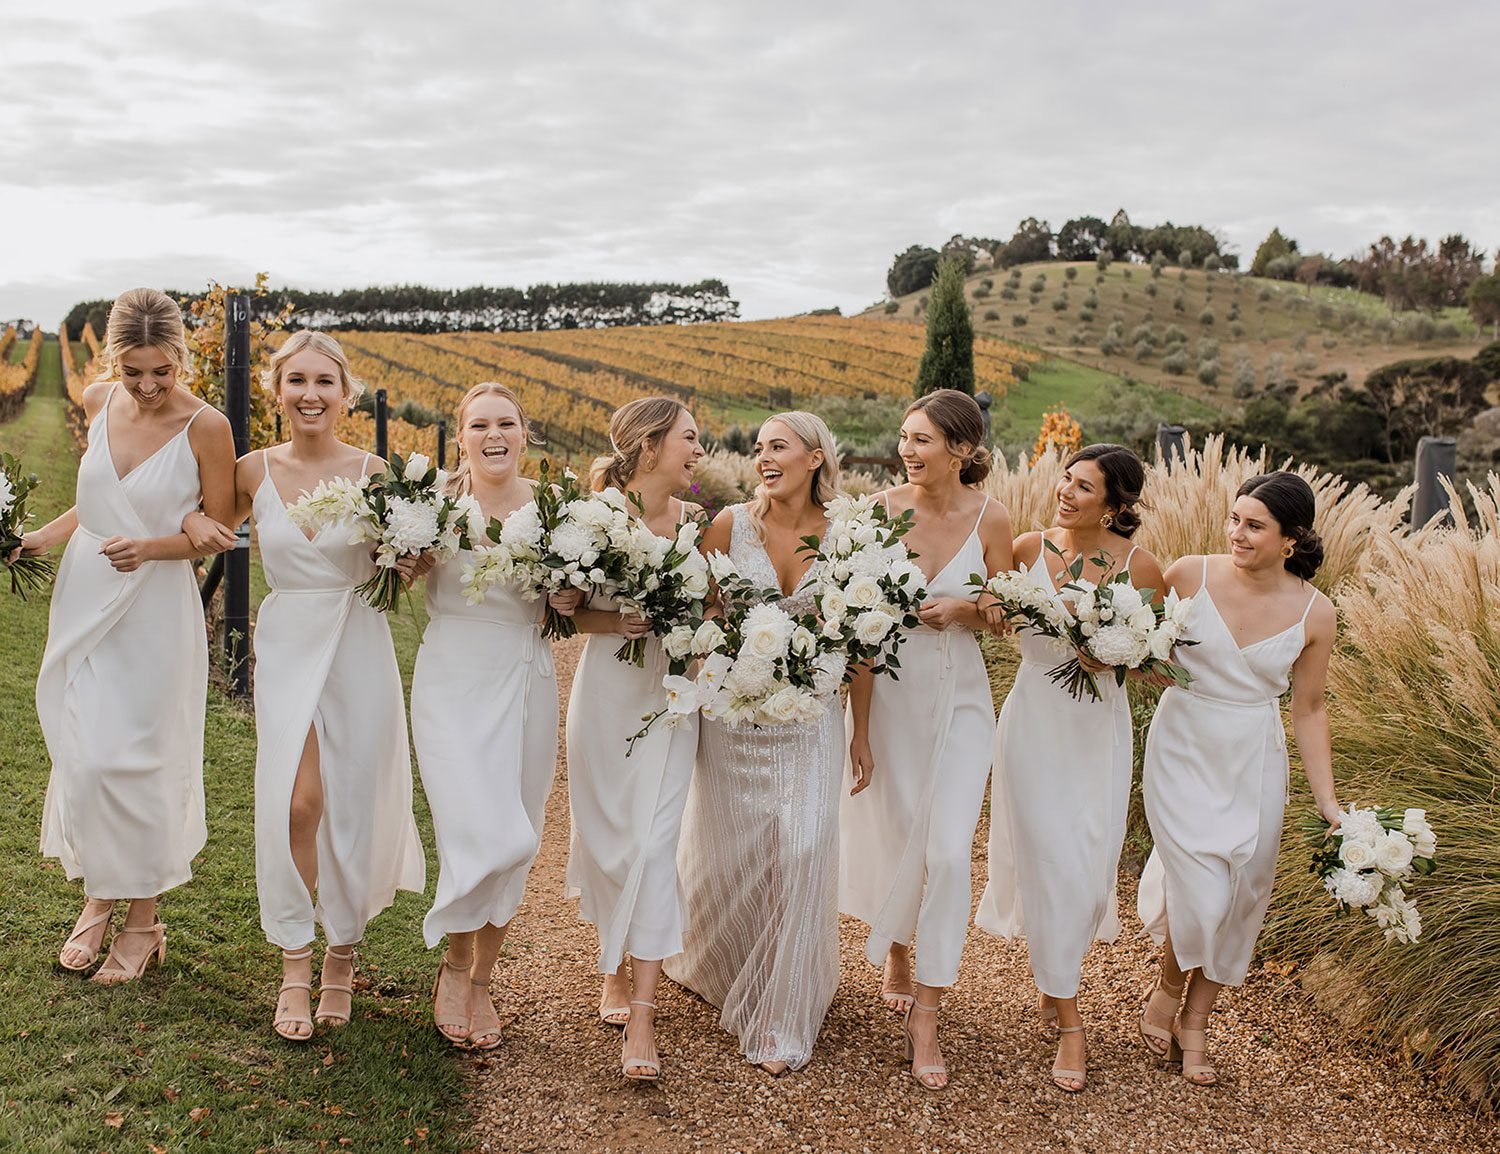 Bride wearing bespoke fitted V-neck gown in beaded lace with front split and sheer beaded overlay by Vinka bridal boutique NZ- laughing with bridesmaids view behind